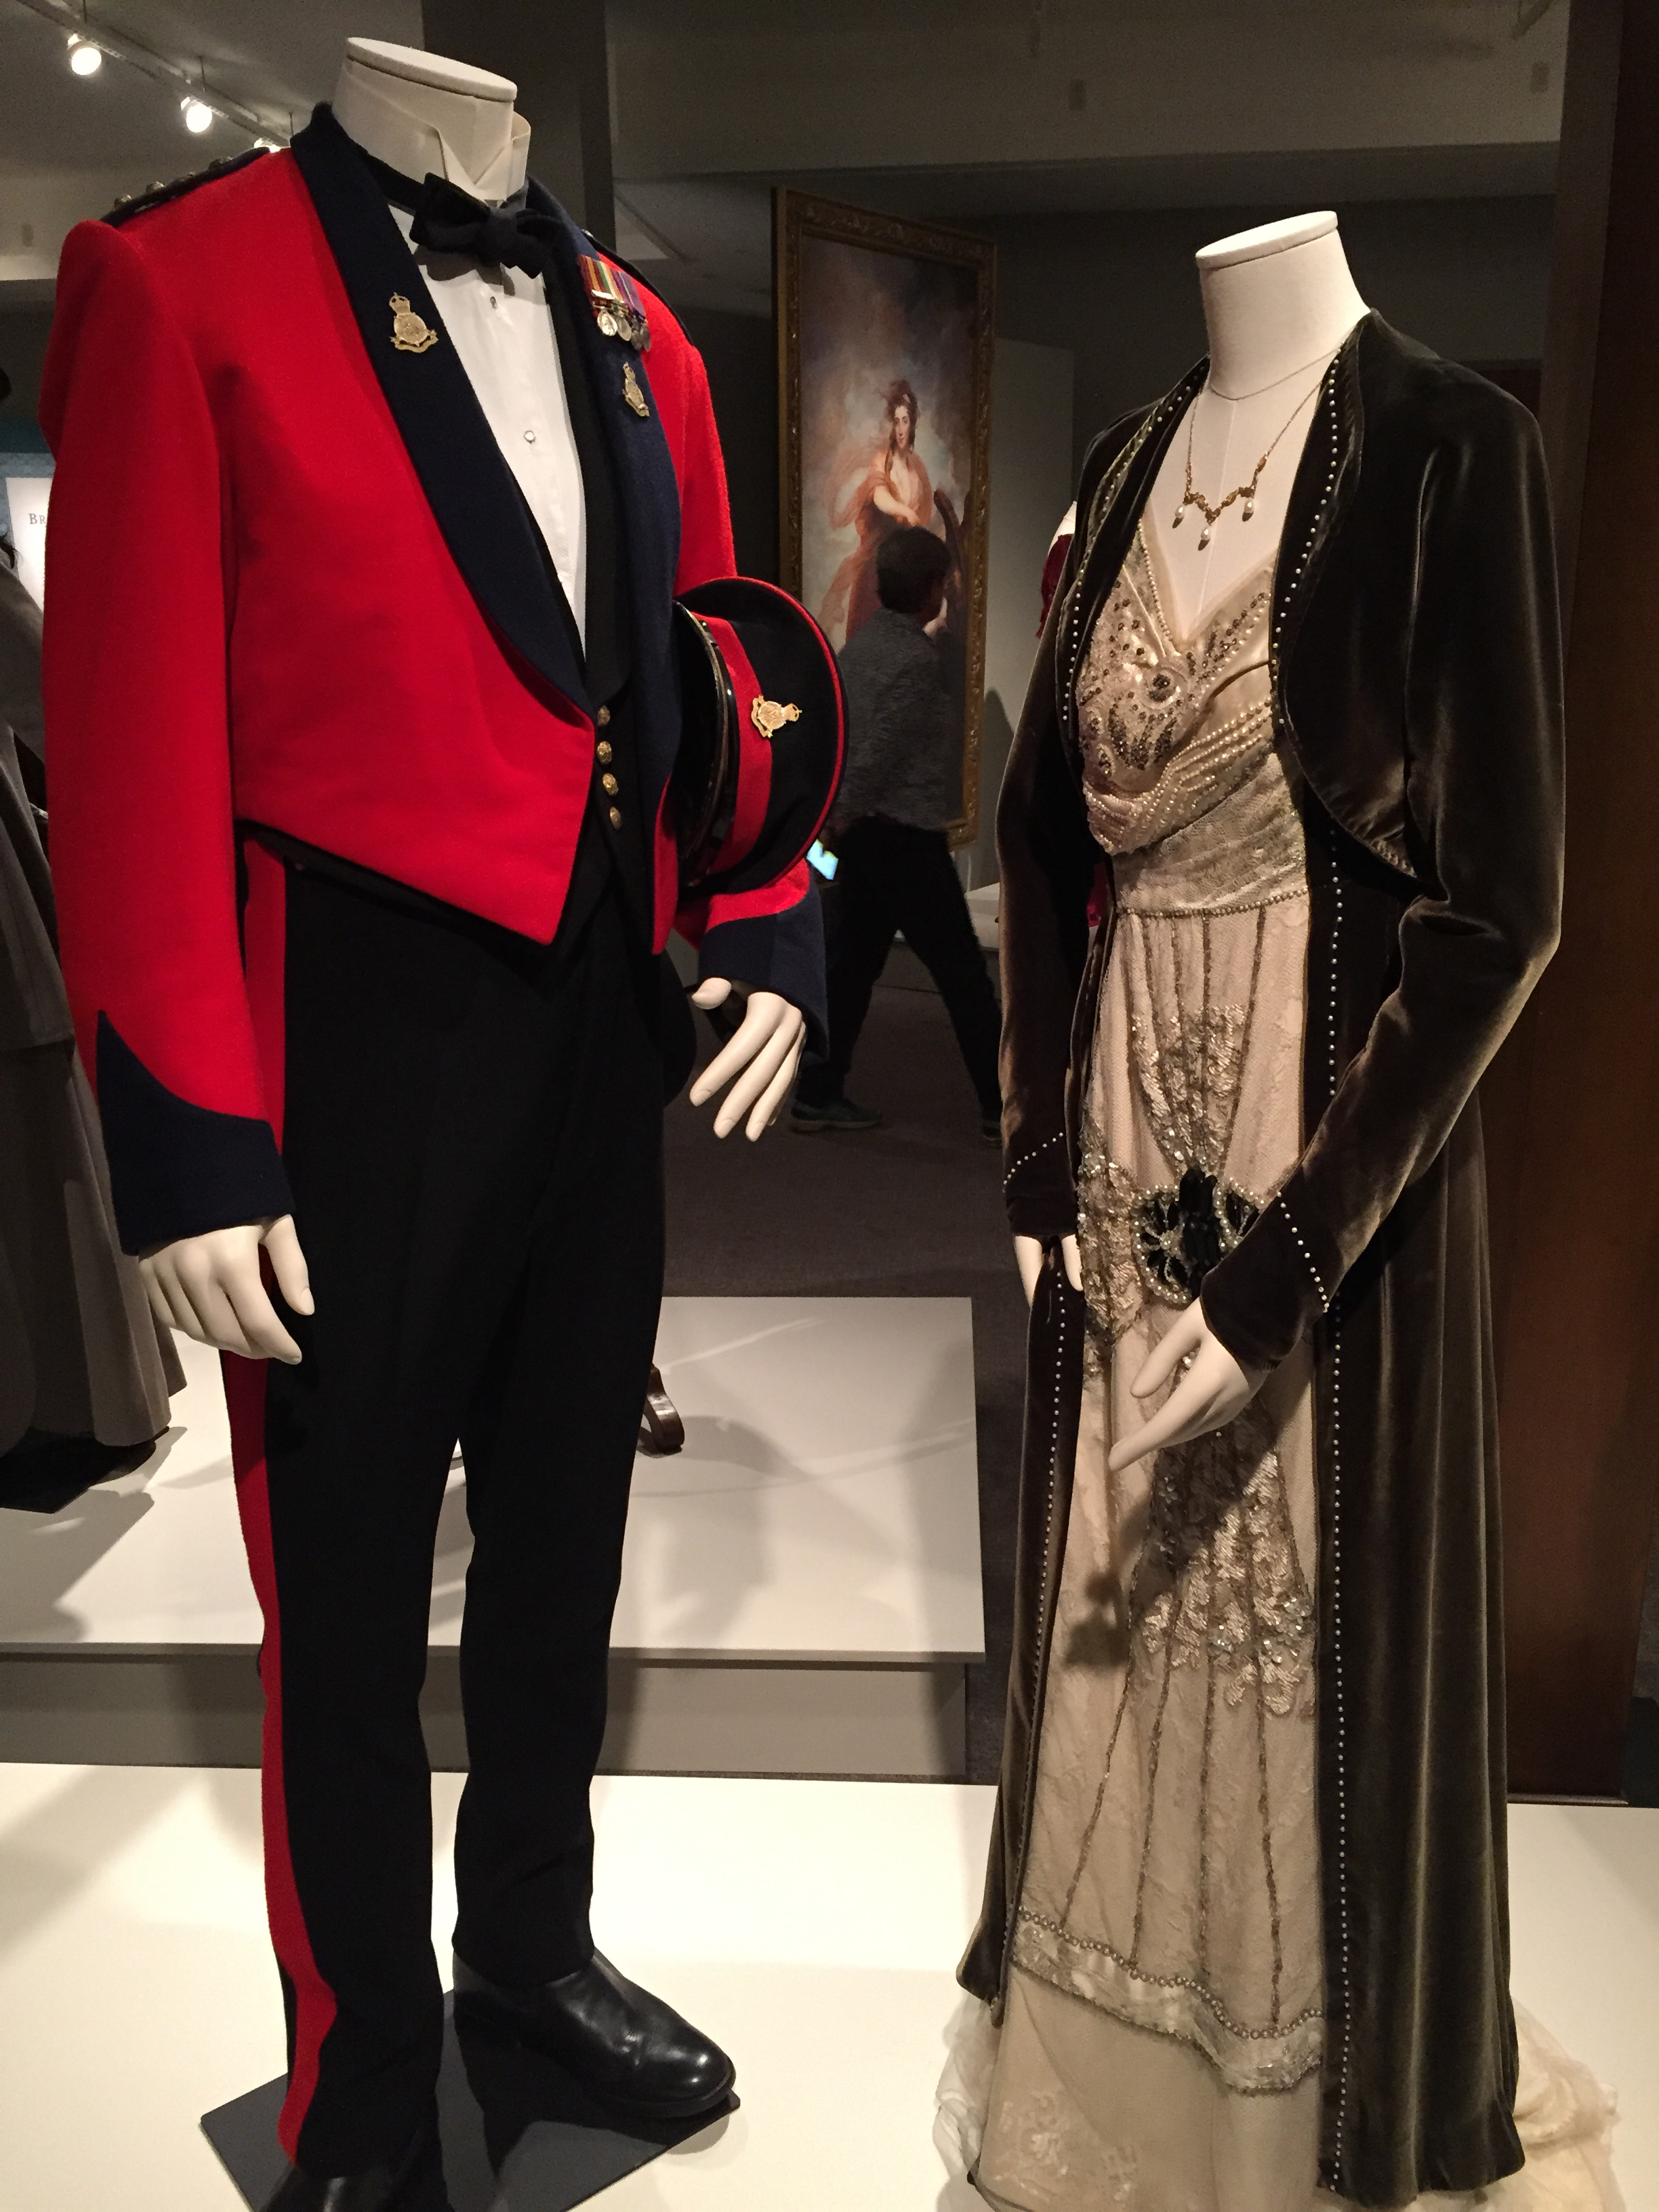 Costumes worn by Lord and Lady Grantham